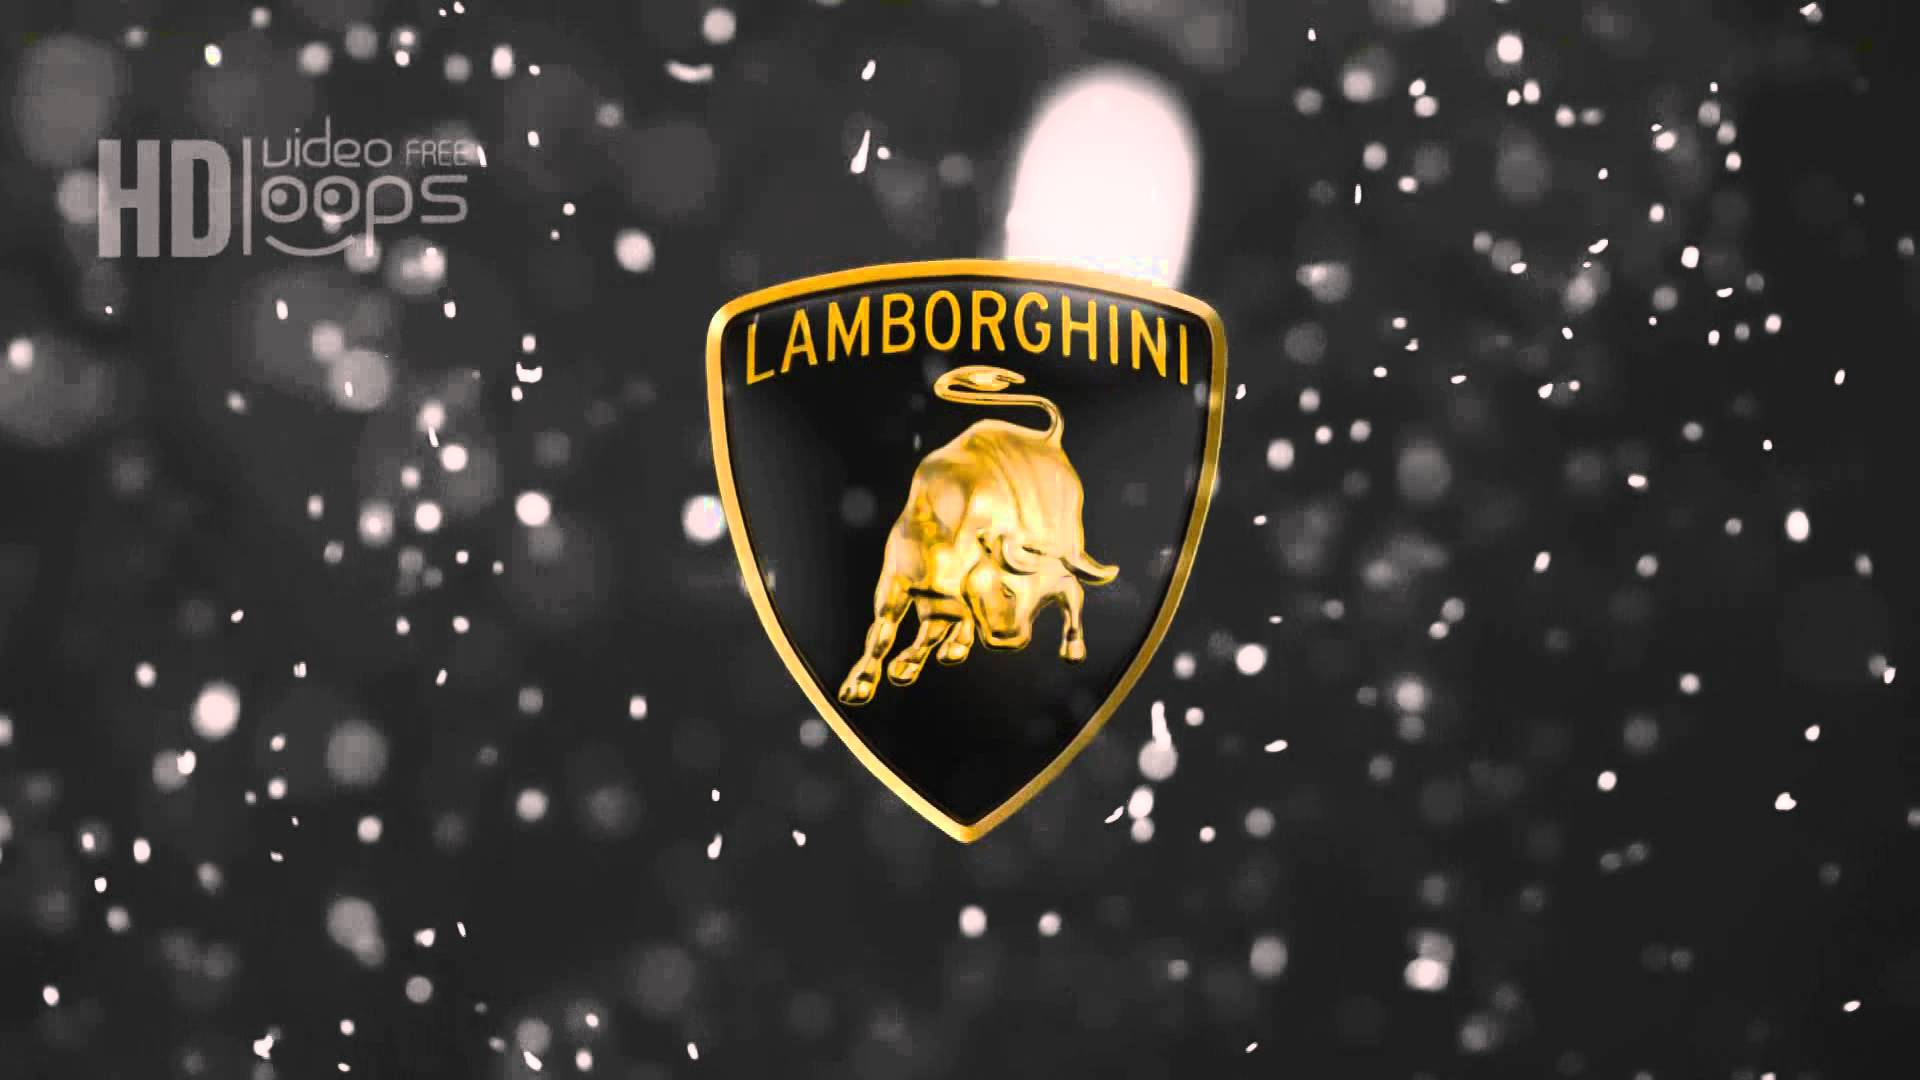 Lamborghini Logo Wallpapers Top Free Lamborghini Logo Backgrounds